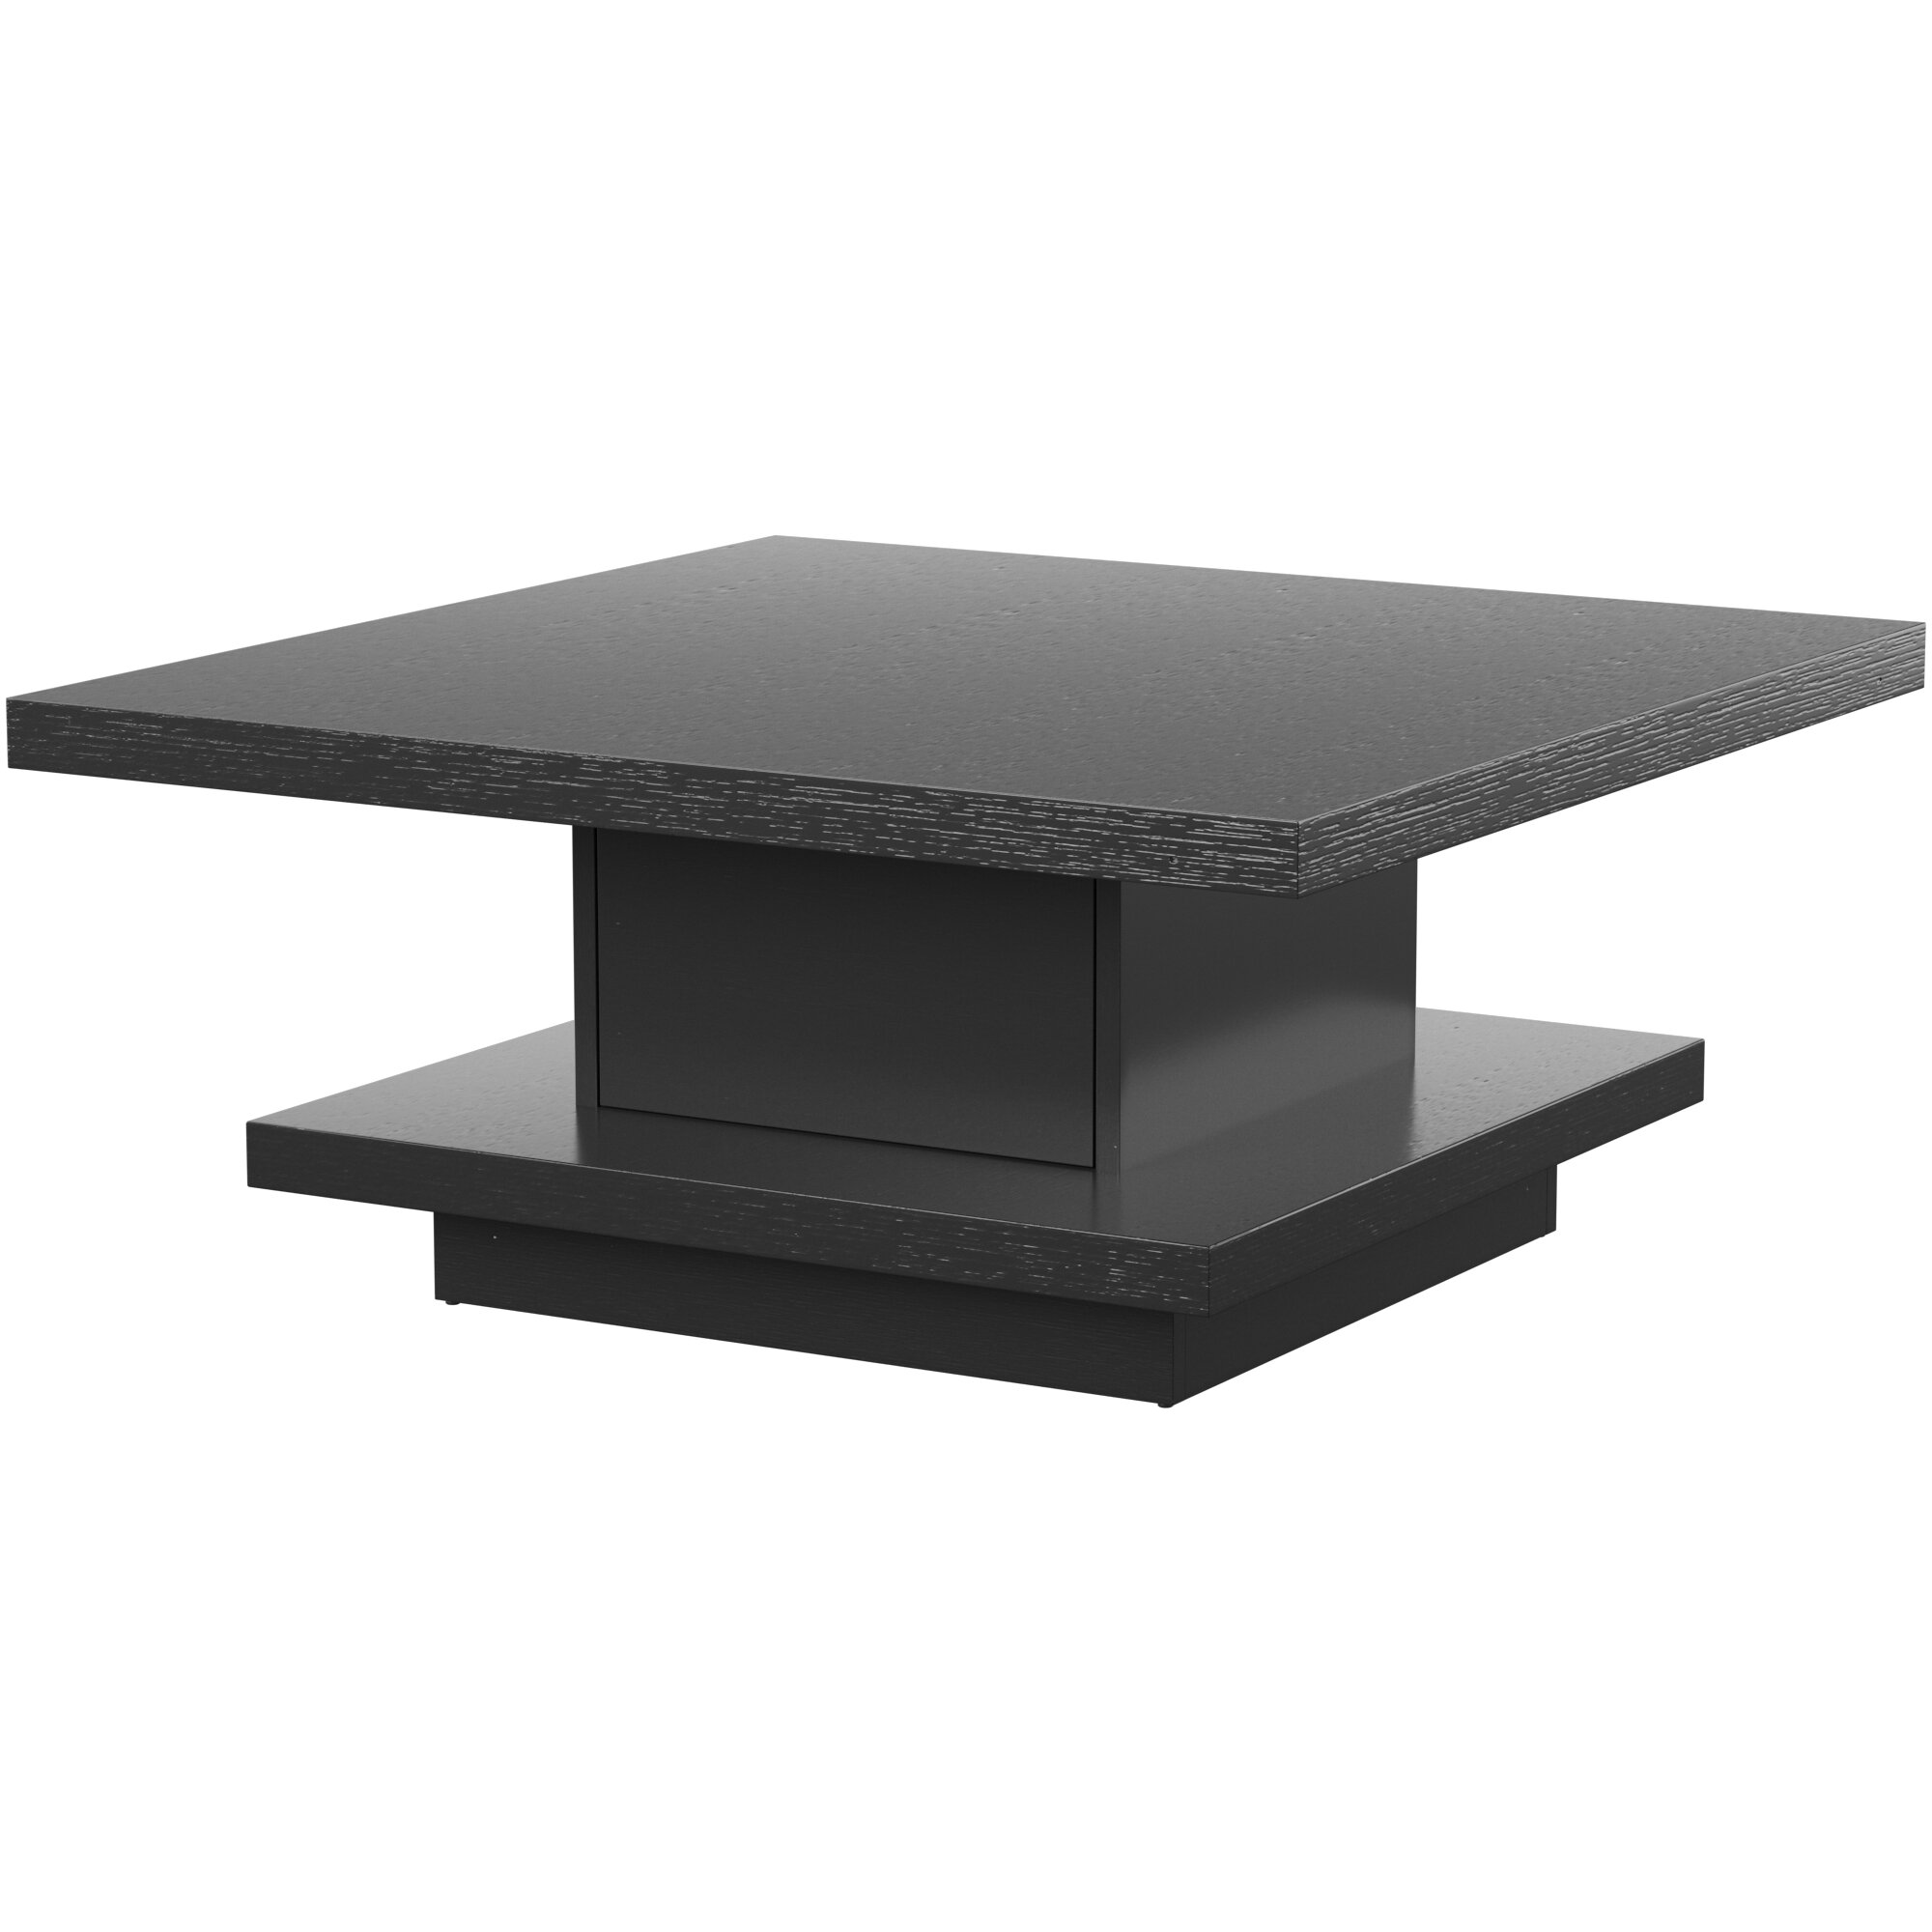 Super Revell Coffee Table With Storage Short Links Chair Design For Home Short Linksinfo